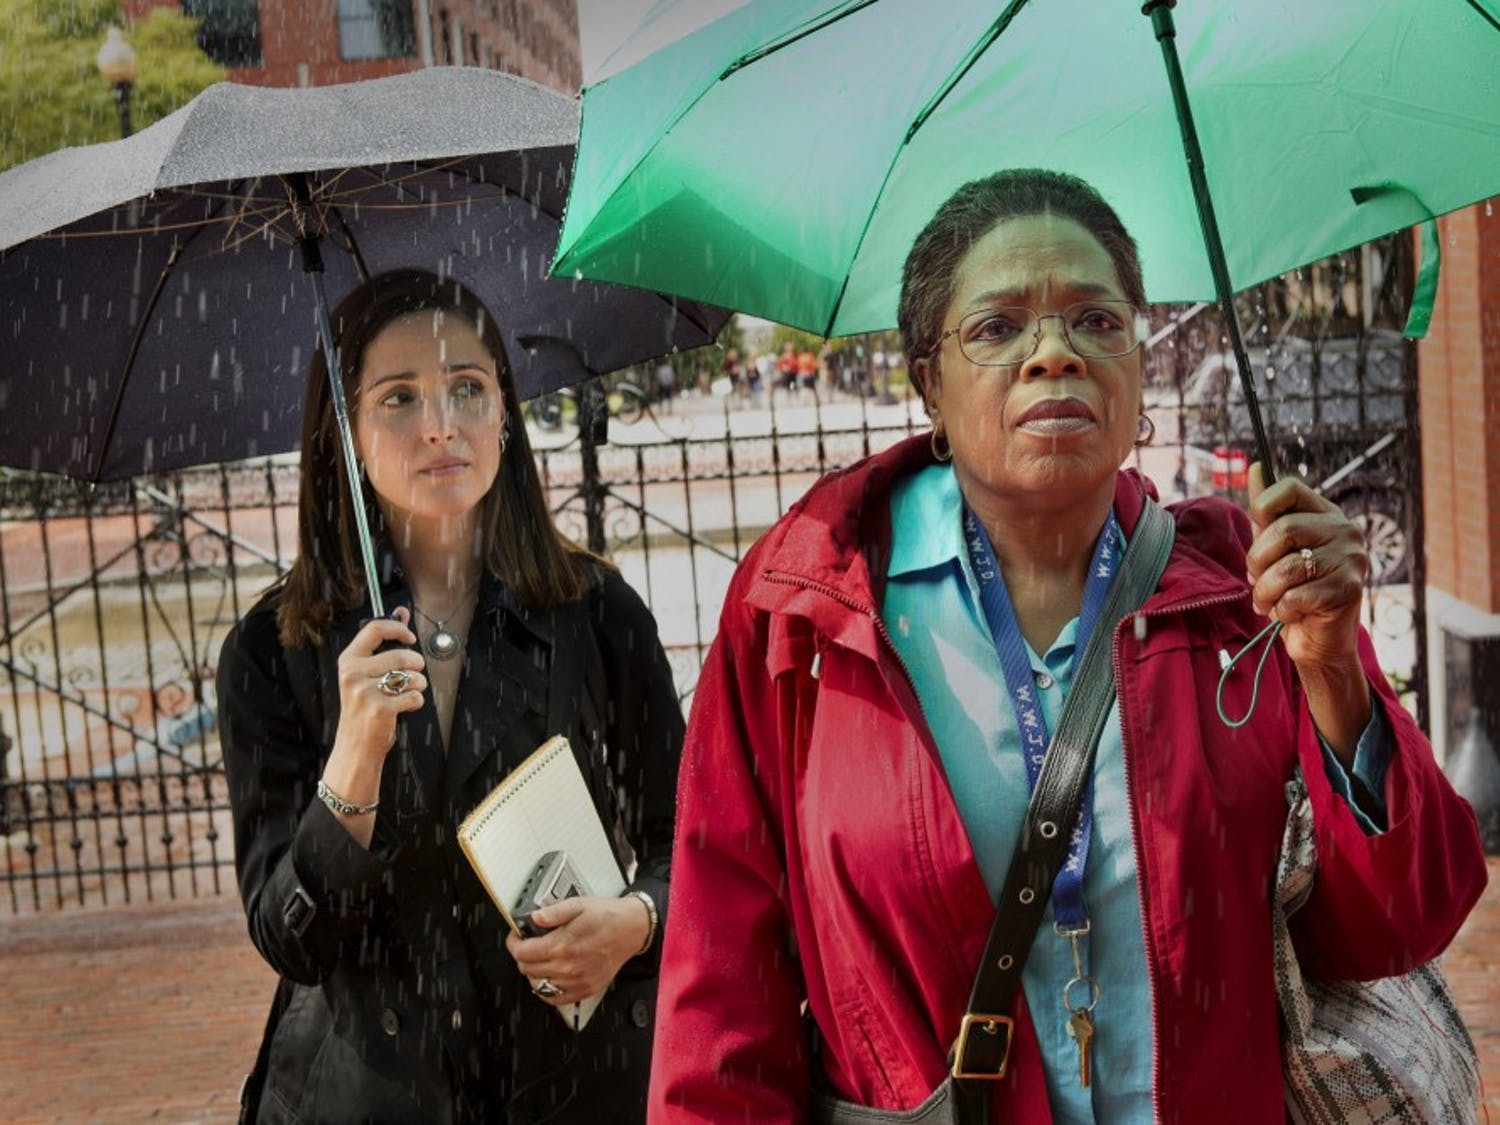 """Rose Byrne (left) and Oprah Winfrey (right) star in """"The Immortal Life of Henrietta Lacks,"""" premiering tonight at 8 p.m. on HBO."""